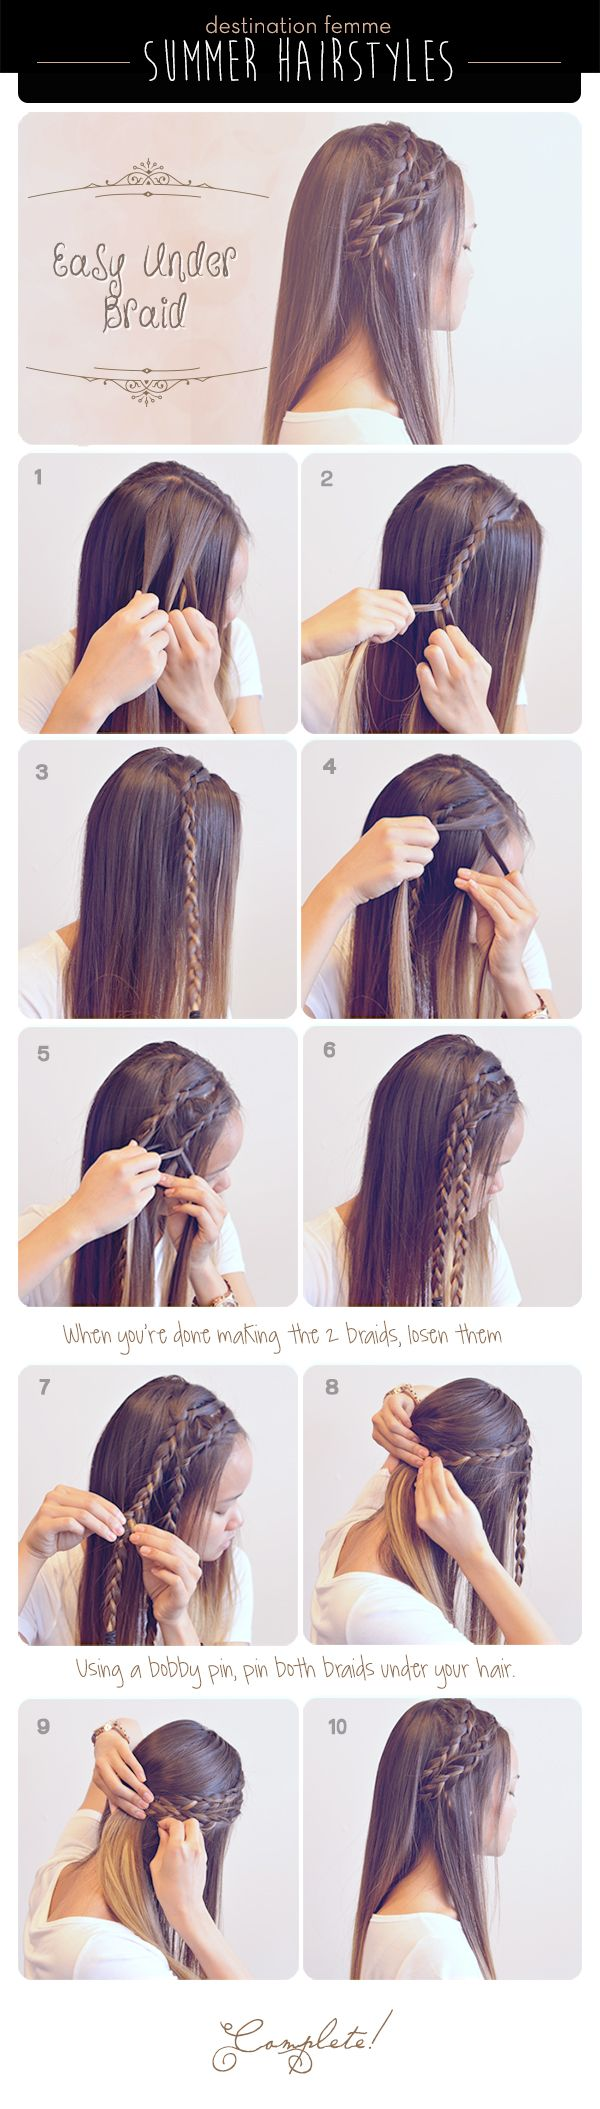 Braids on Braids: Three must have hairstyles for the summer #Beauty #Hair #Braids